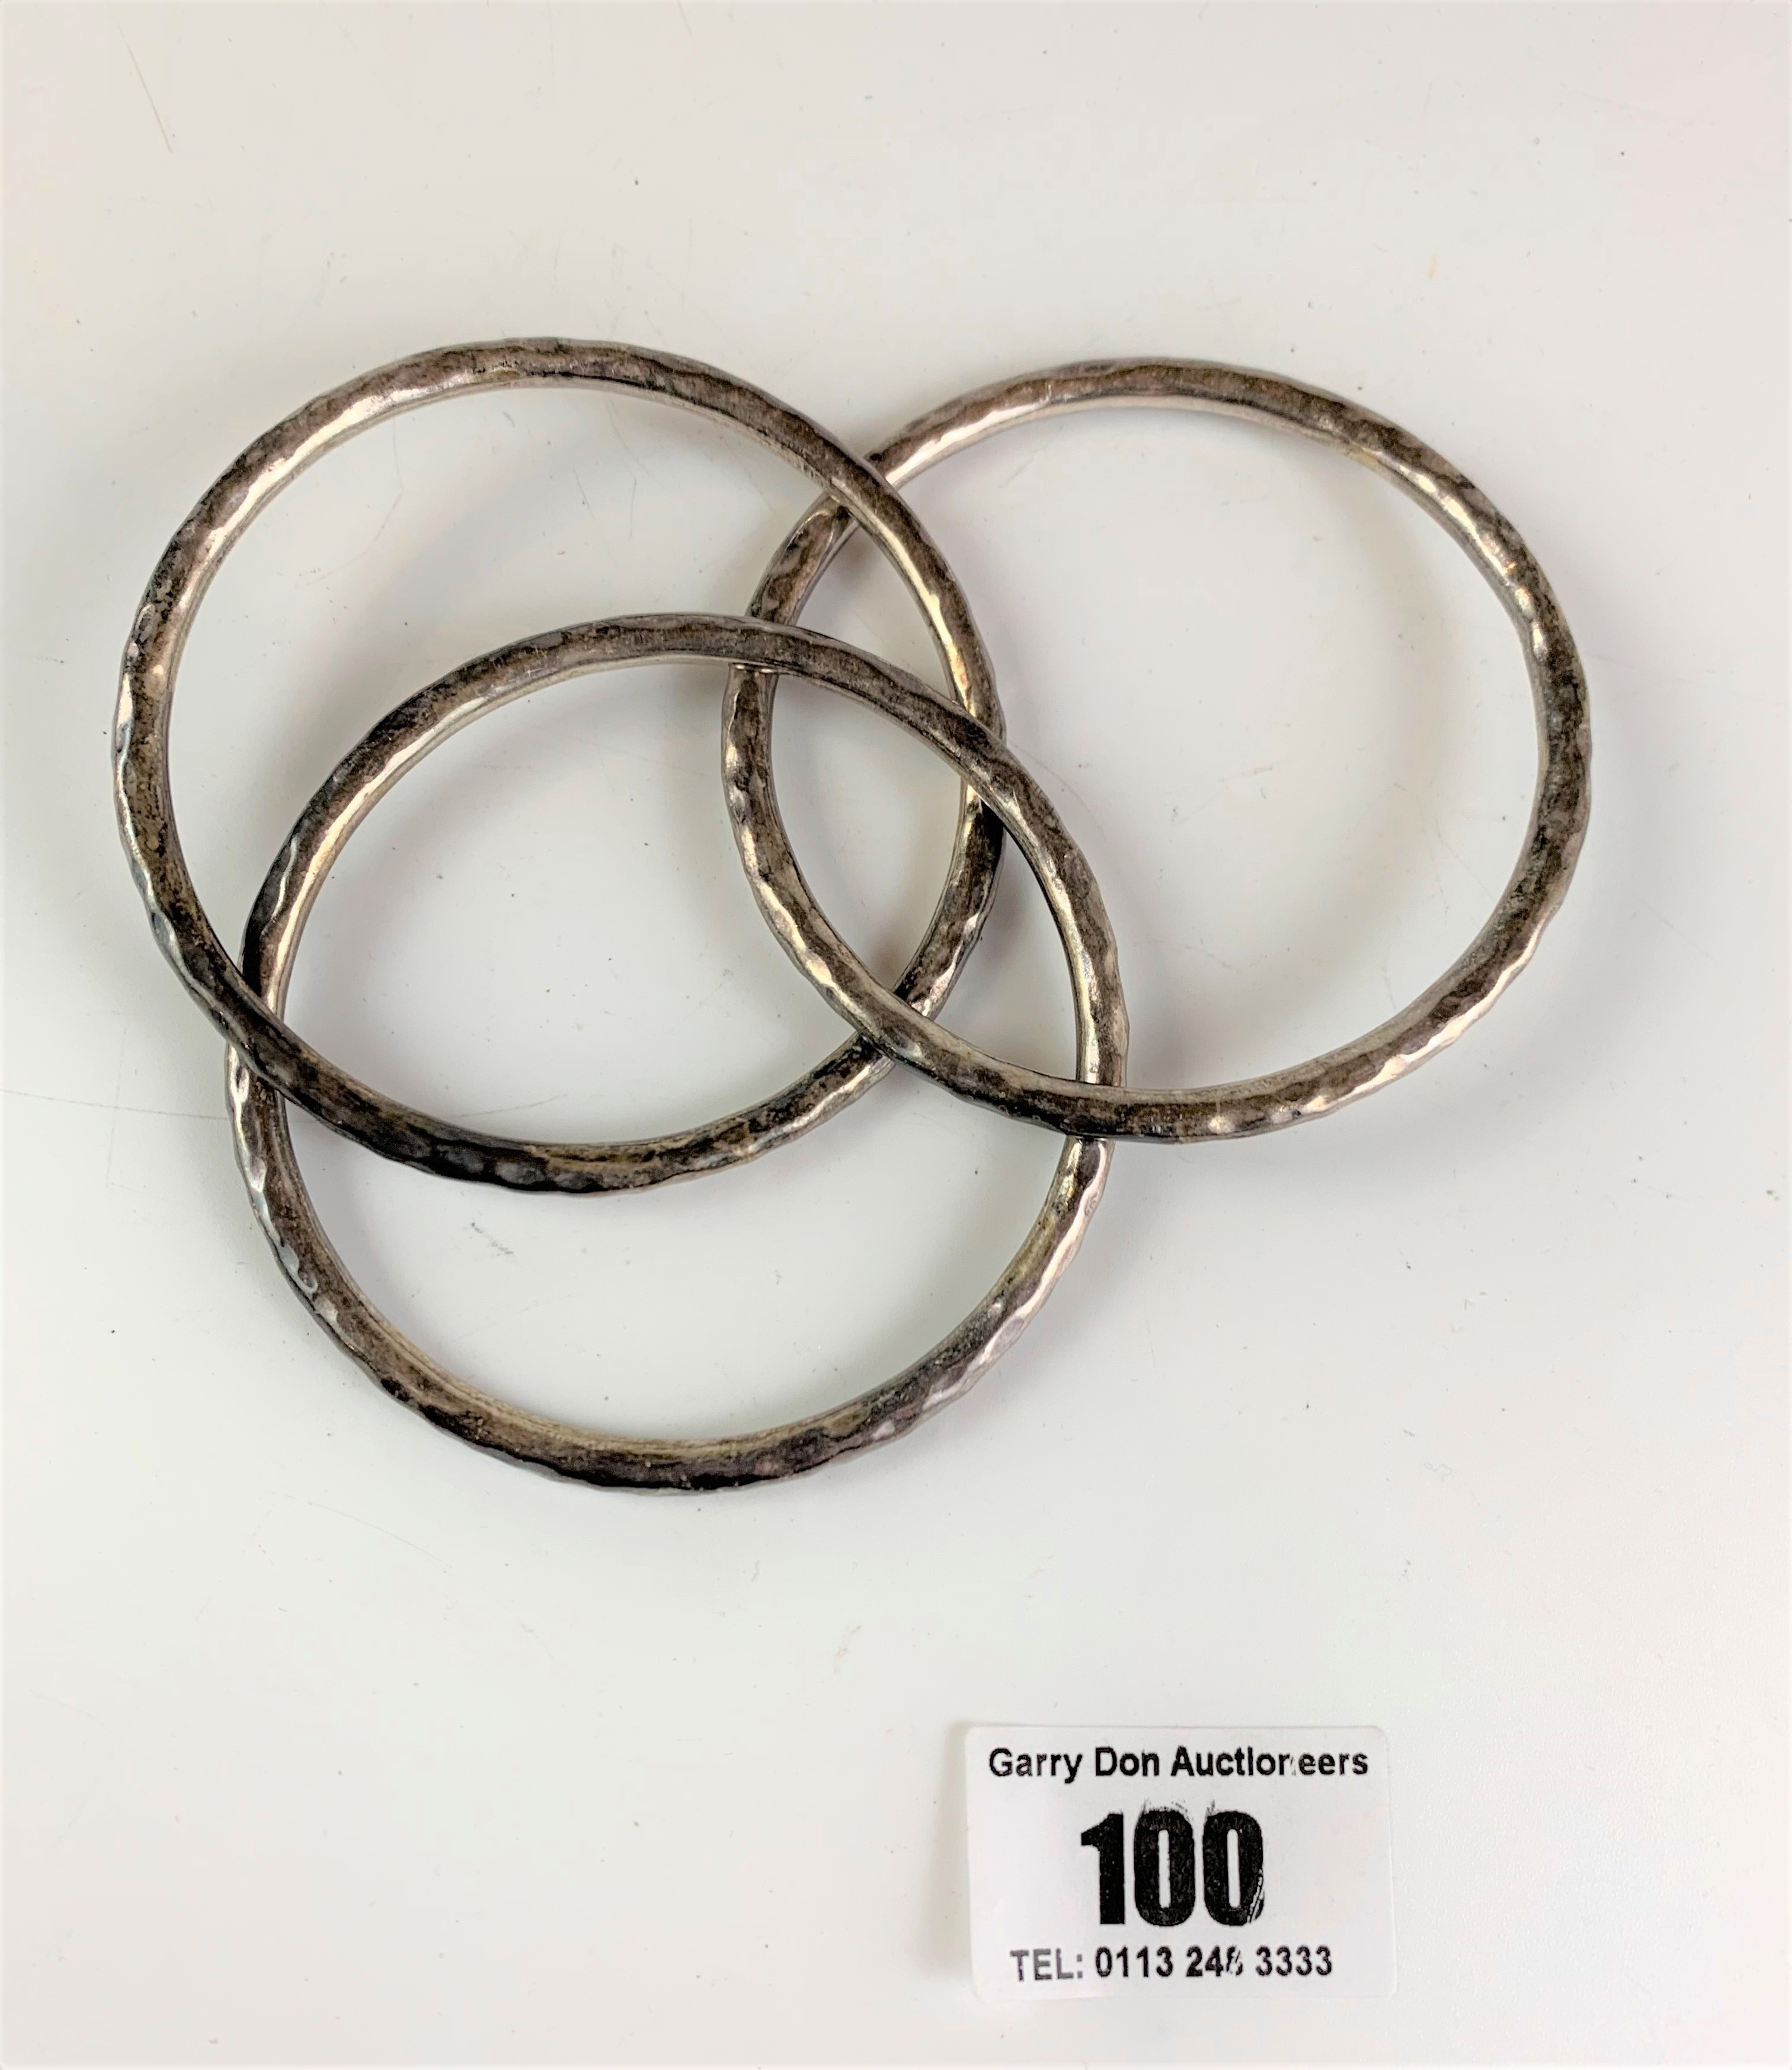 3 interlocked silver bangles, total w: 1.5 ozt - Image 3 of 3